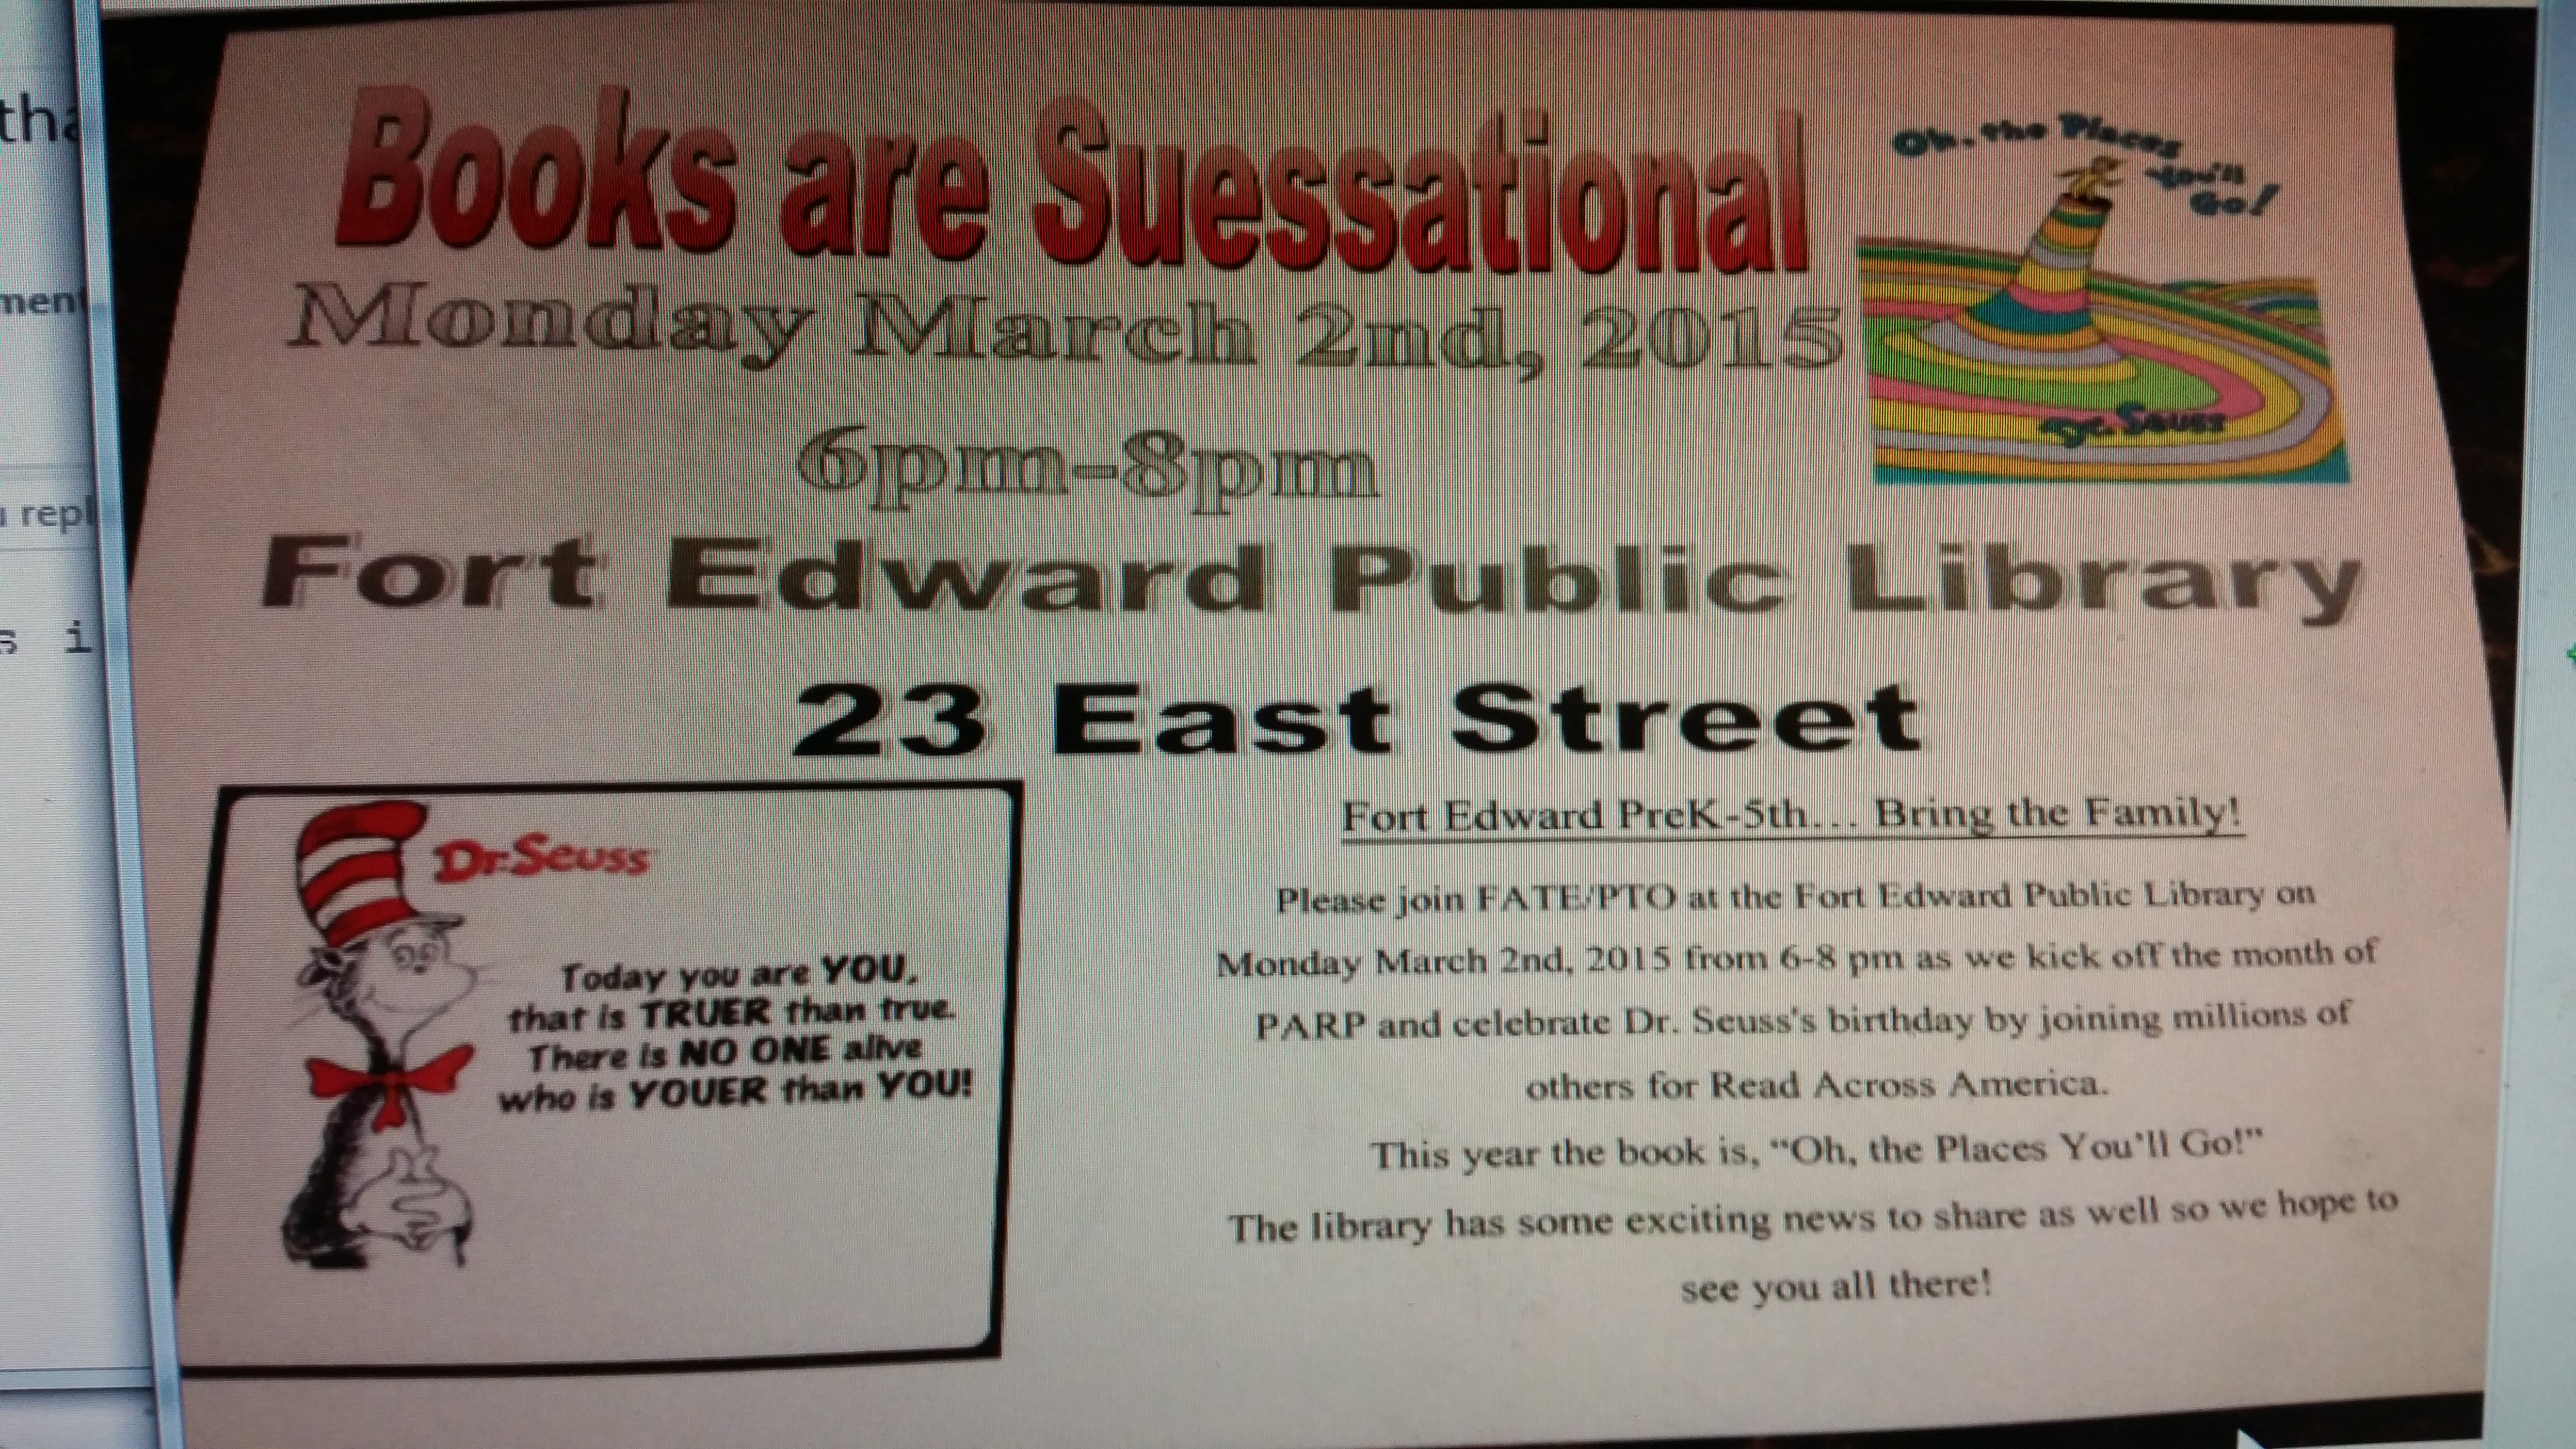 Another Birthday for Dr. Suess!  Come help FATE of Fort Edward and the Library celebrate!